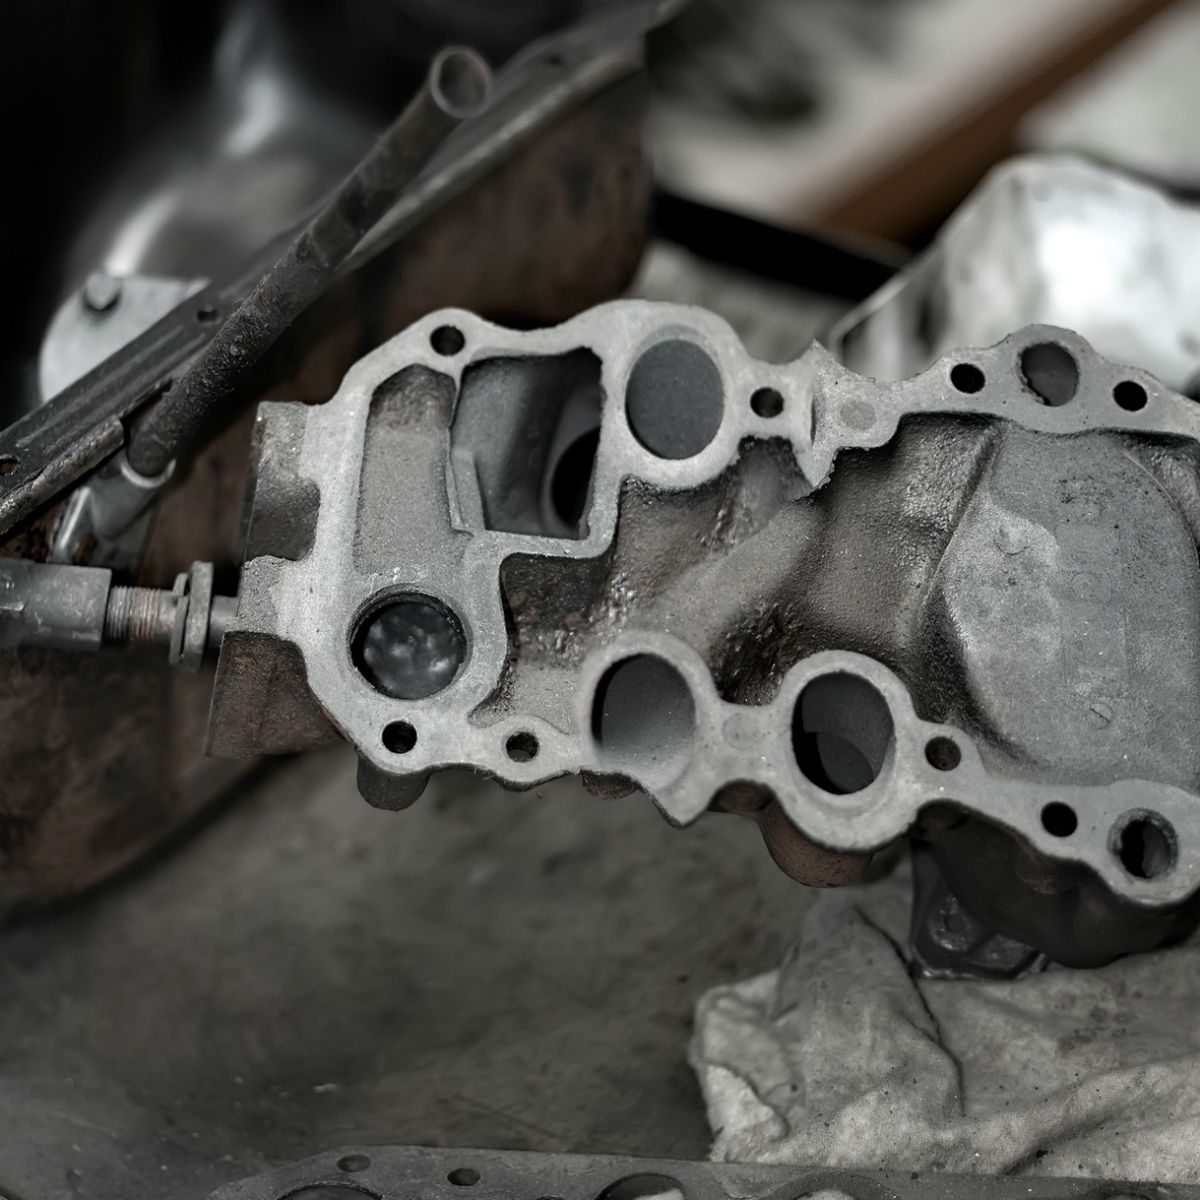 Car Exhaust Manifold Gasket Replacement Costs & Repairs | AutoGuru